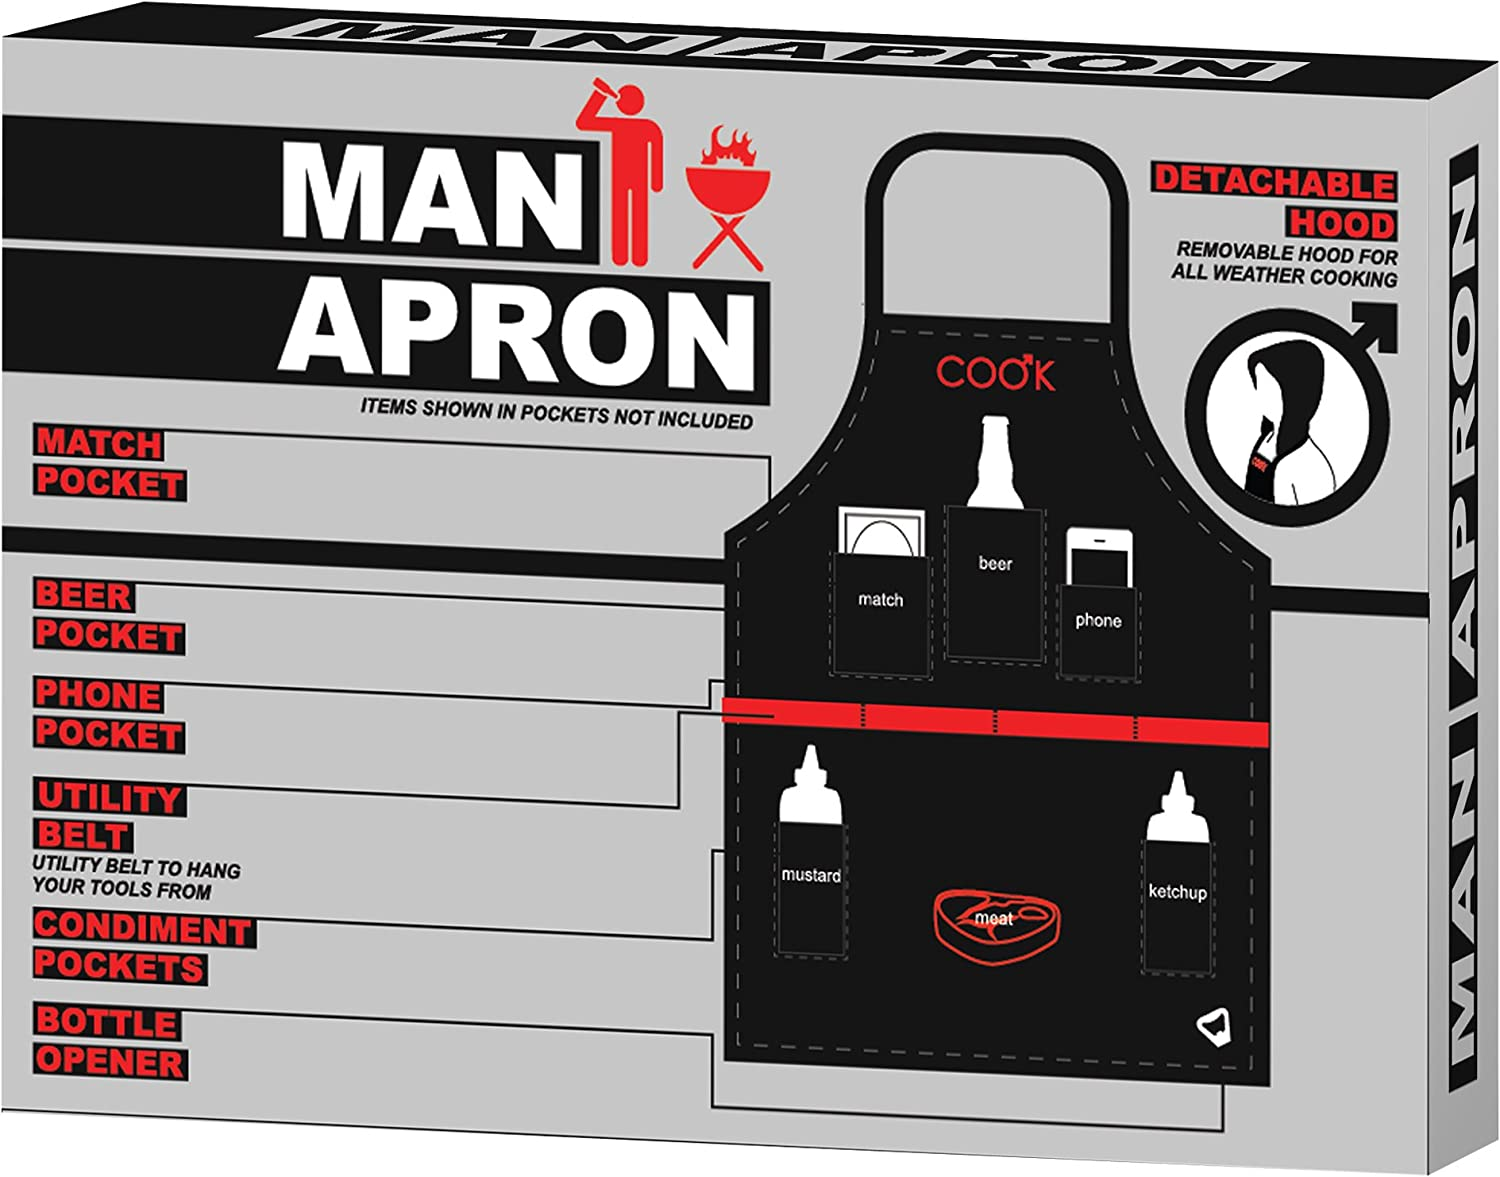 The Man Apron Ultimate BBQ Apron